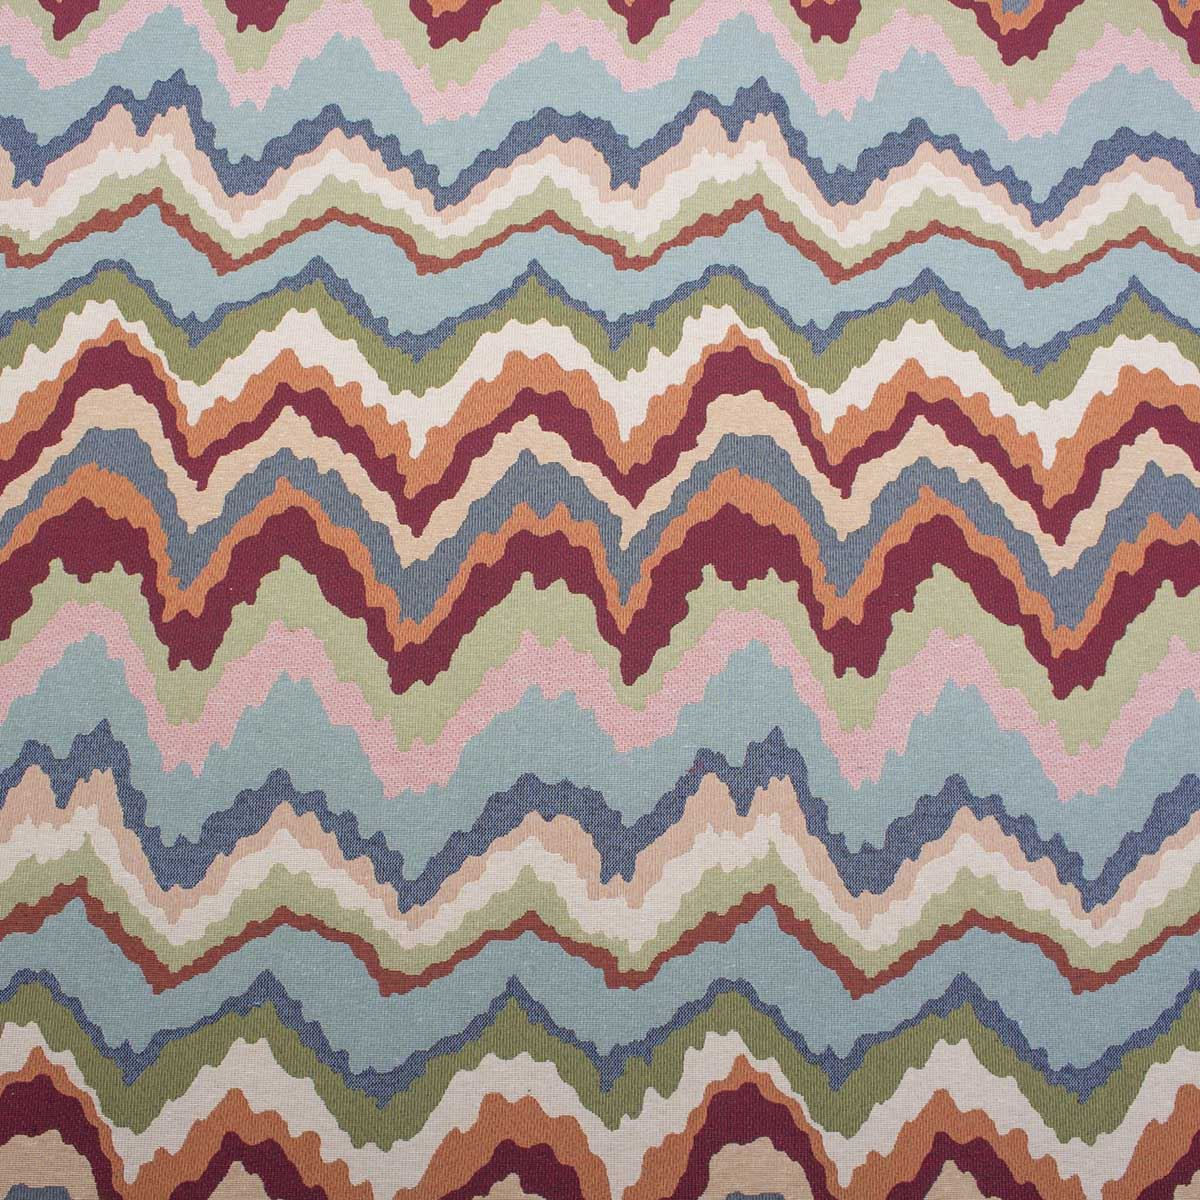 Colourful waves Fabric 80/% Cotton 20/% Poly material metre upholstery feel piece